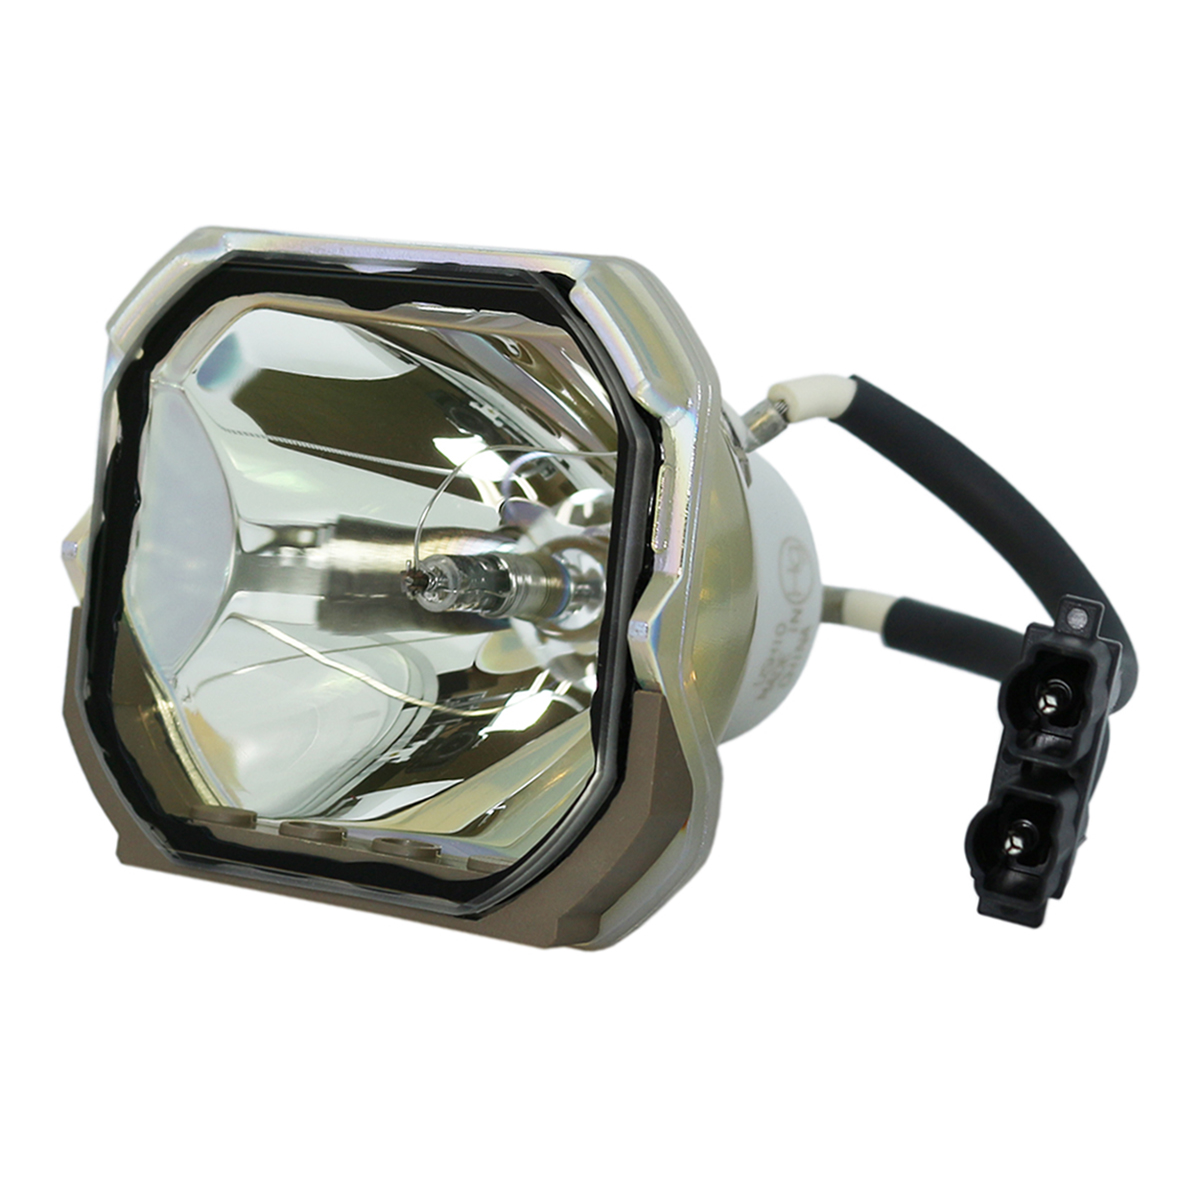 Compatible Bare Bulb EP8746LK 78-6969-9260-7 for 3M MP8647 MP8720 MP8746 MP8747 Projector Lamp Bulbs without housing 8747 349